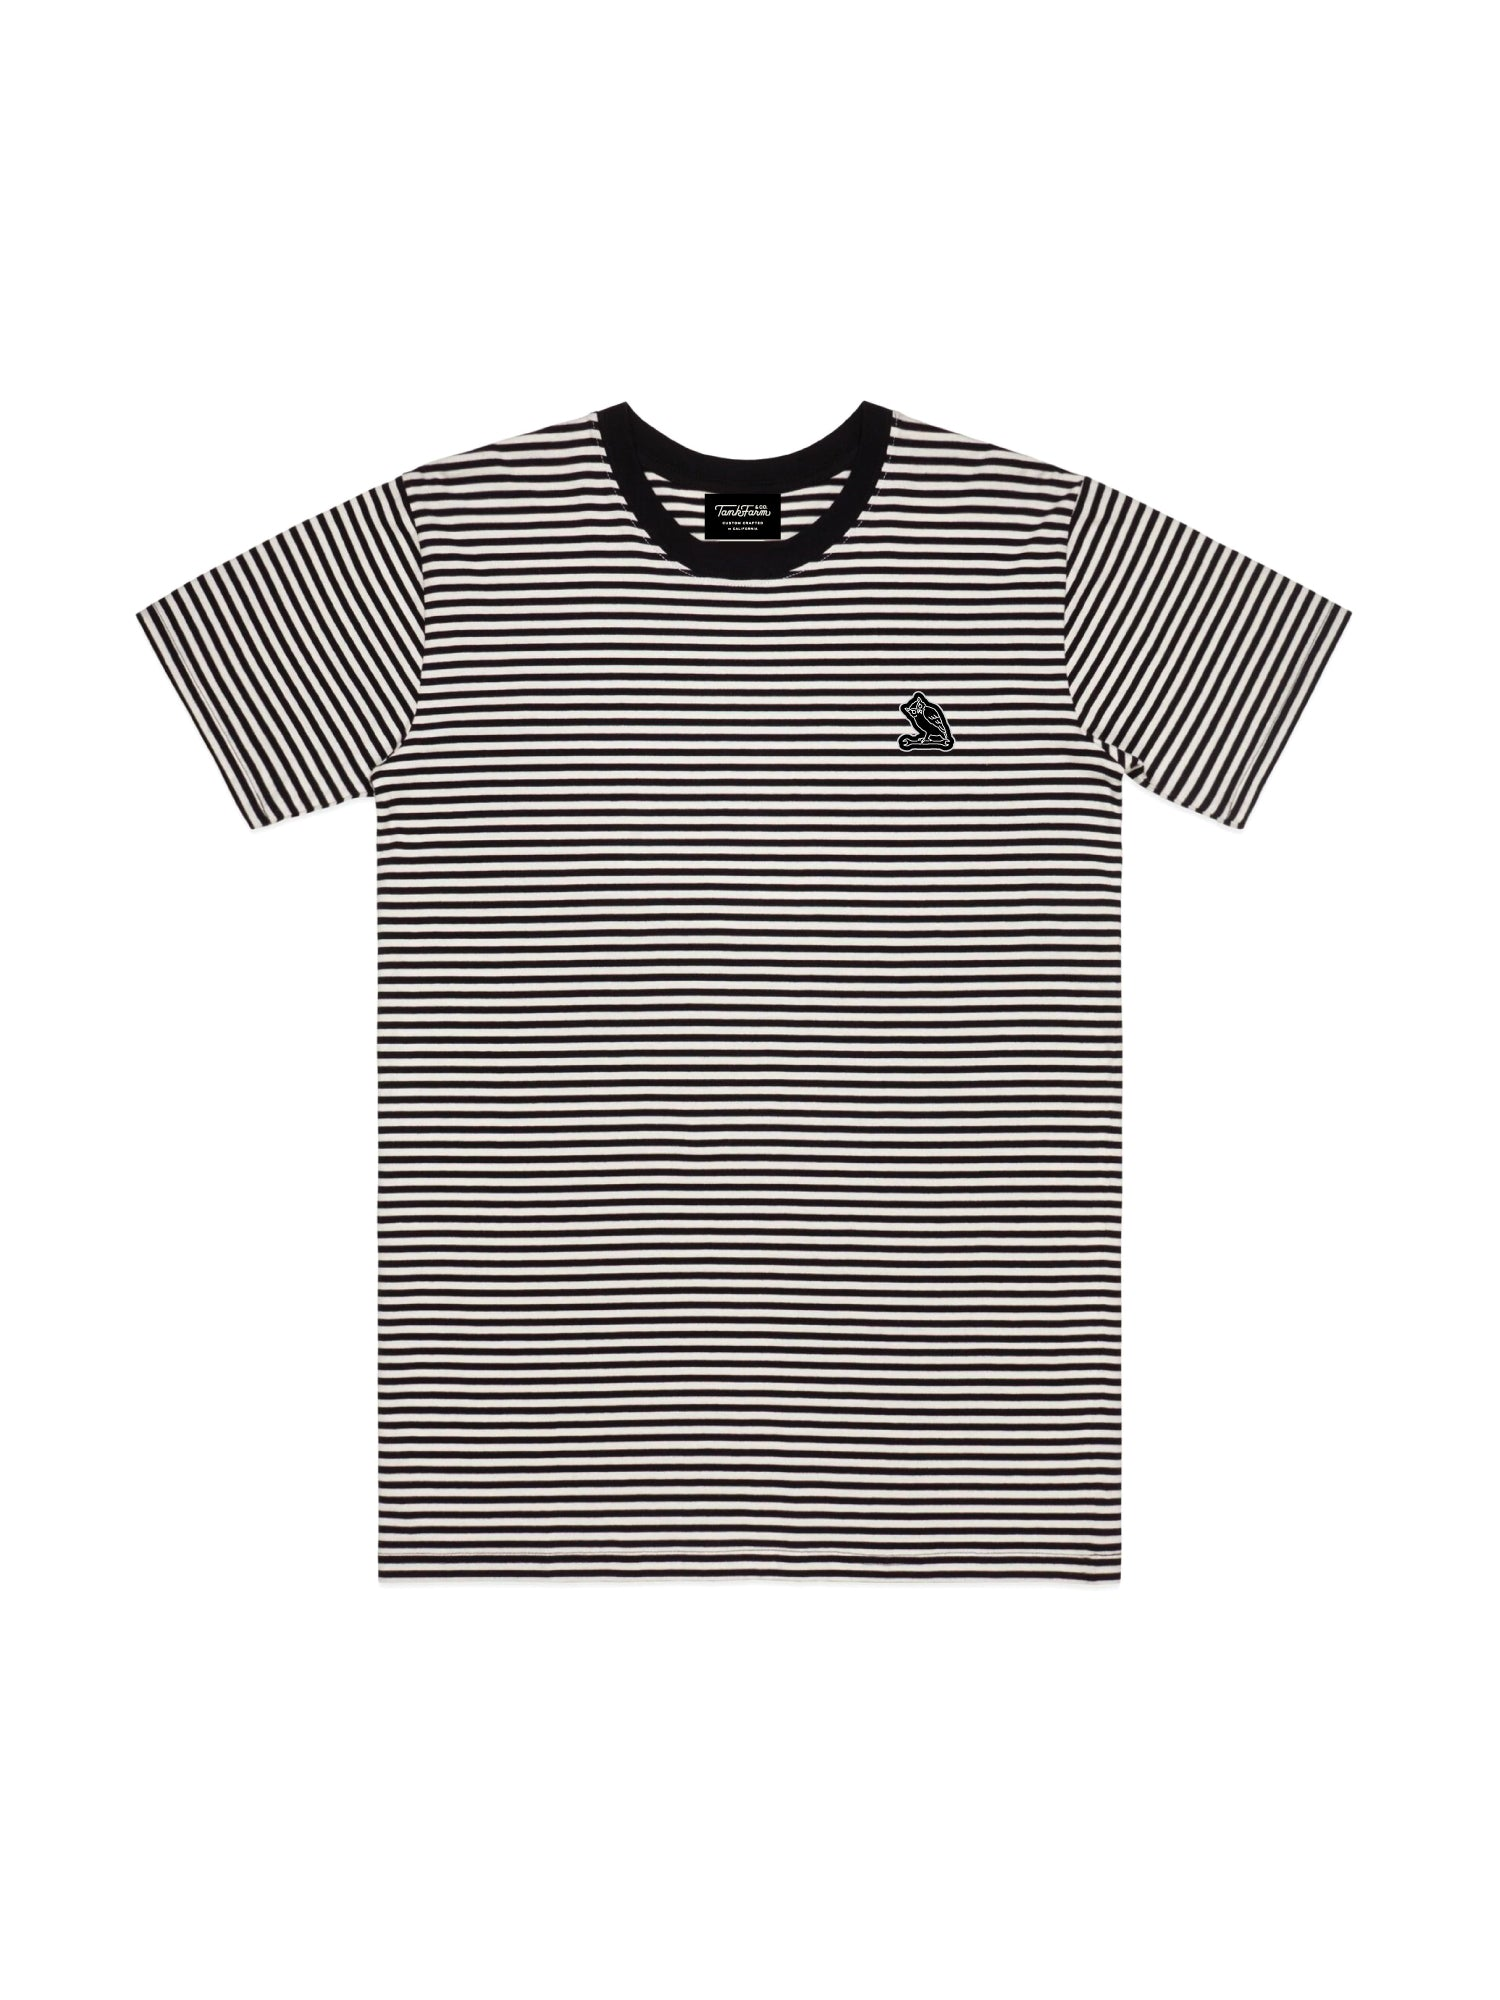 TF OWL - SAILOR STRIPE - Tankfarm & Co.